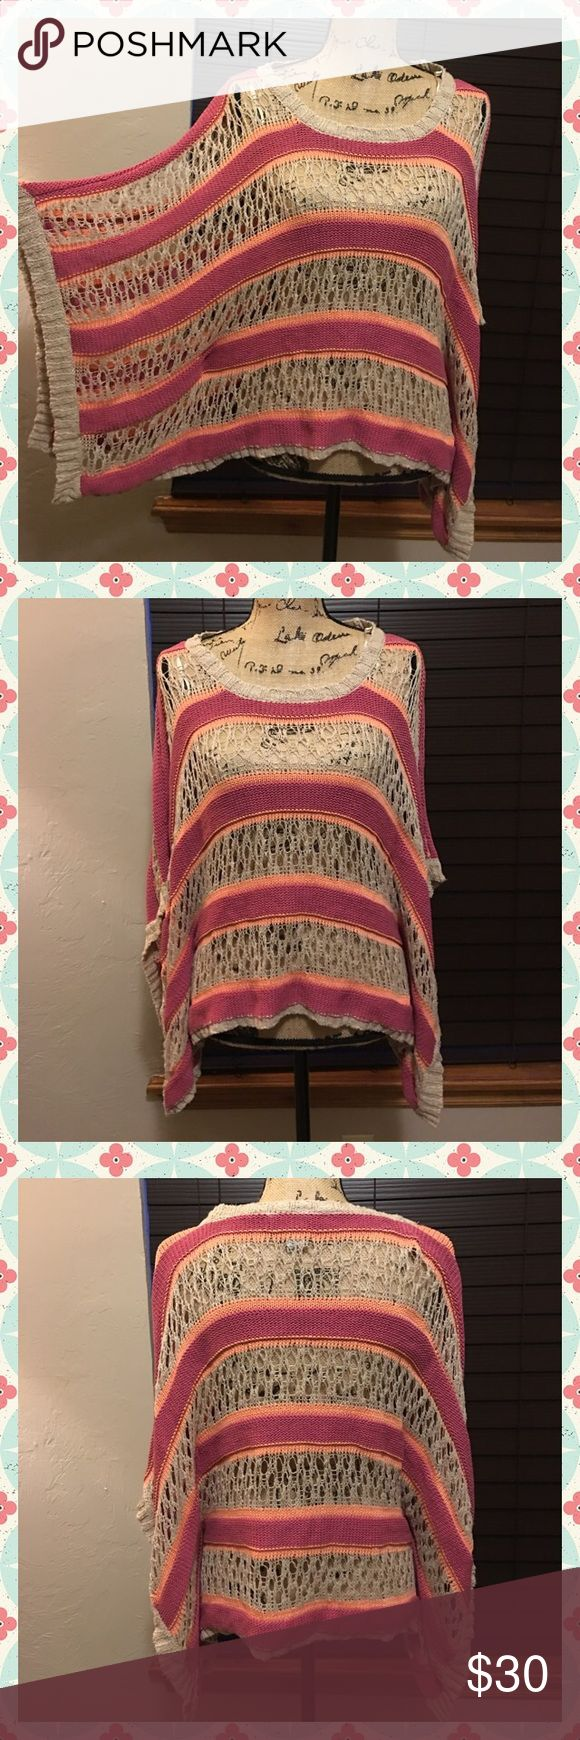 NWOT✨American Rag Pink Striped Poncho✨CUTE!✨ NWOT American Rag Pink and Cream striped poncho! A lovely piece to add to you closet! This was never worn and is NWOT! American Rag Sweaters Shrugs & Ponchos